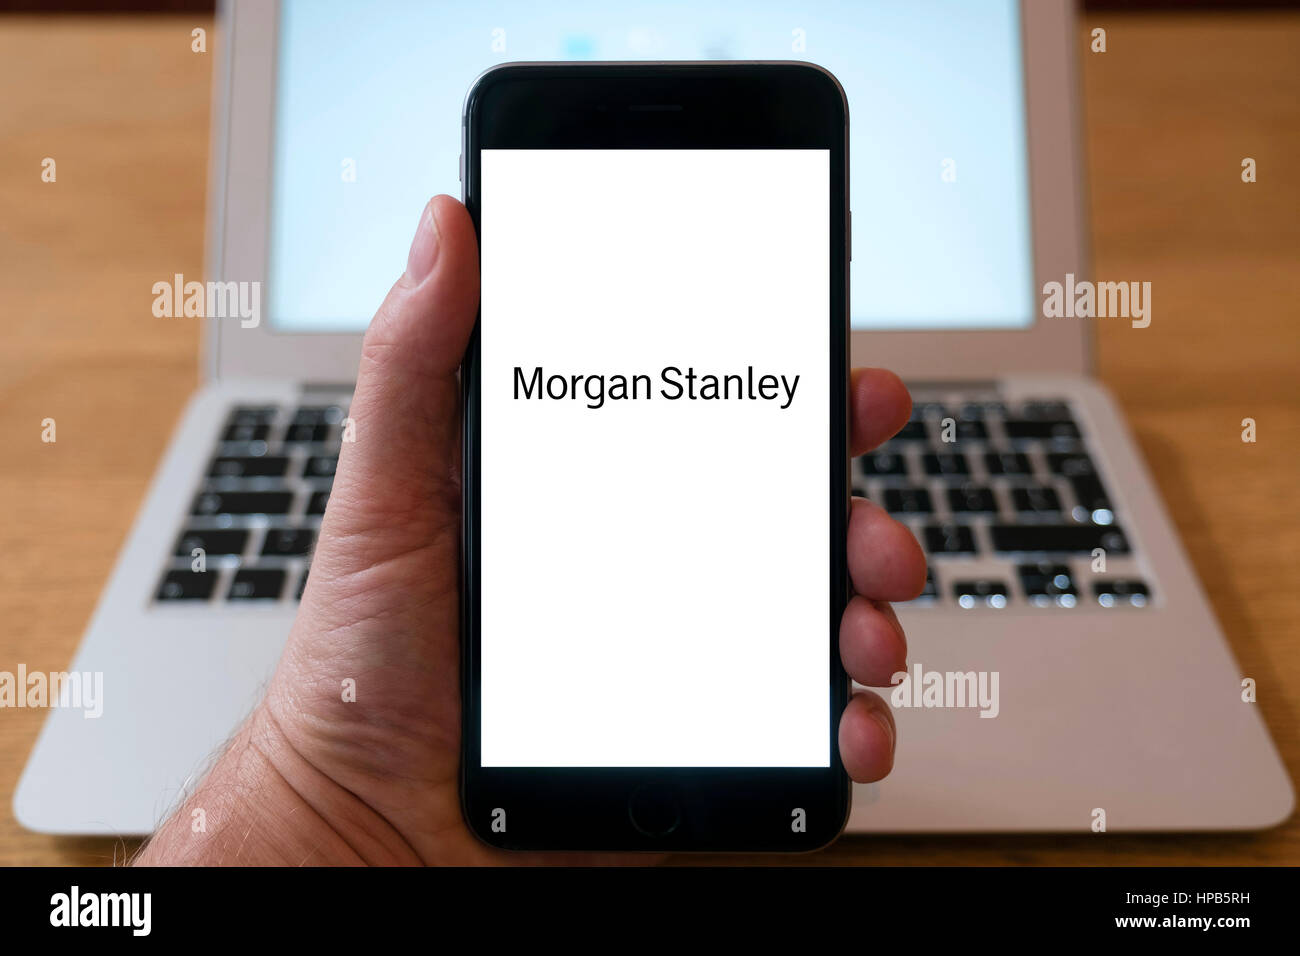 Morgan Stanley financial company website on smart phone screen Stock